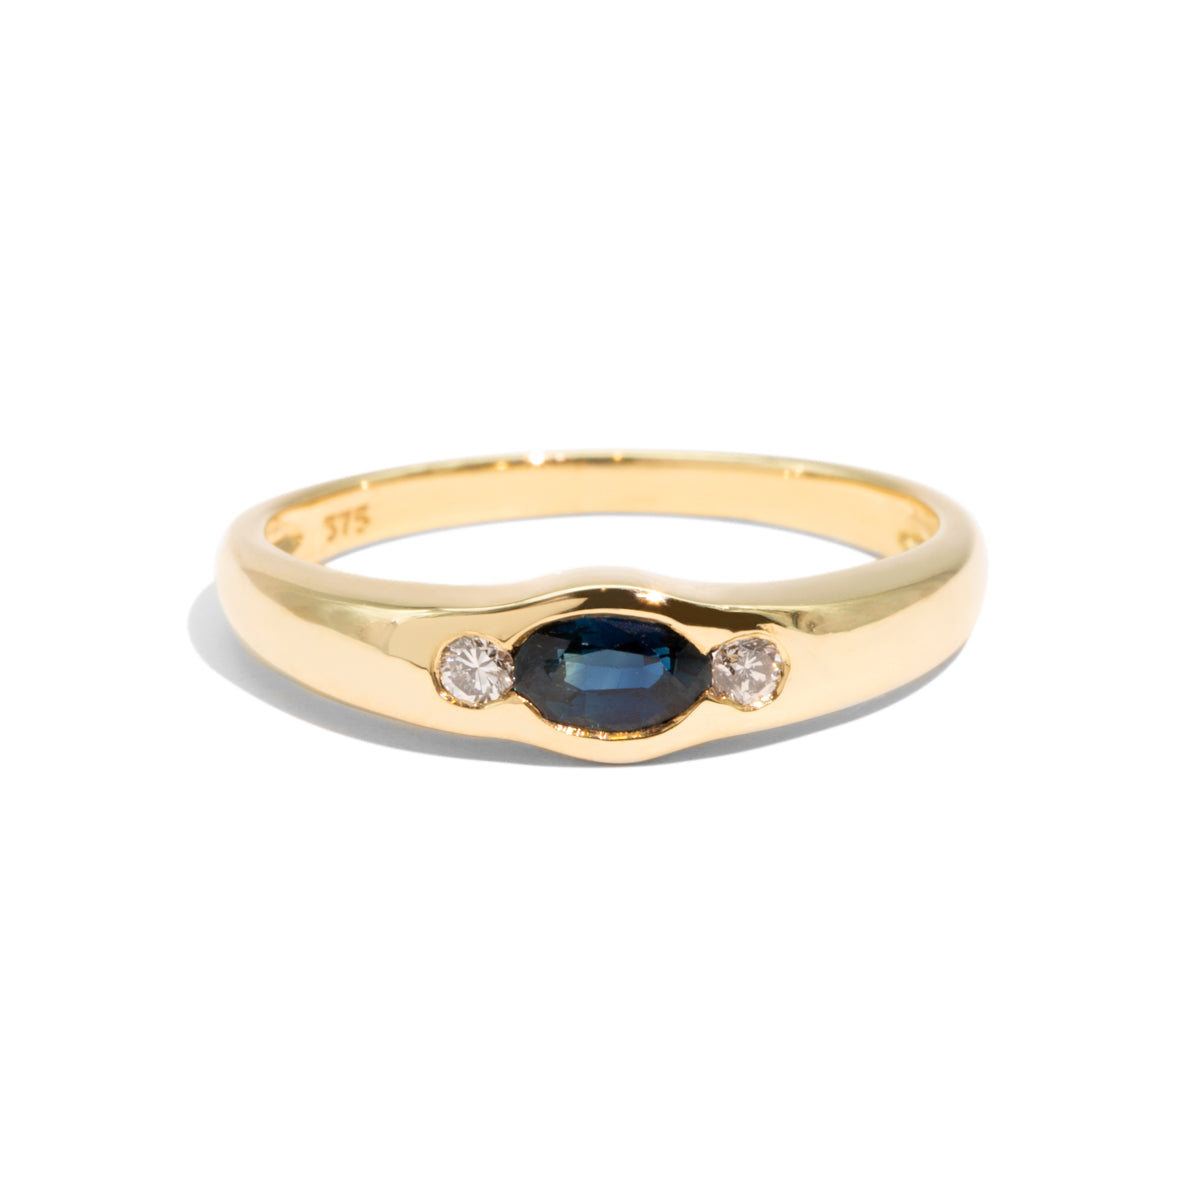 The Greta Vintage Sapphire & Diamond Ring